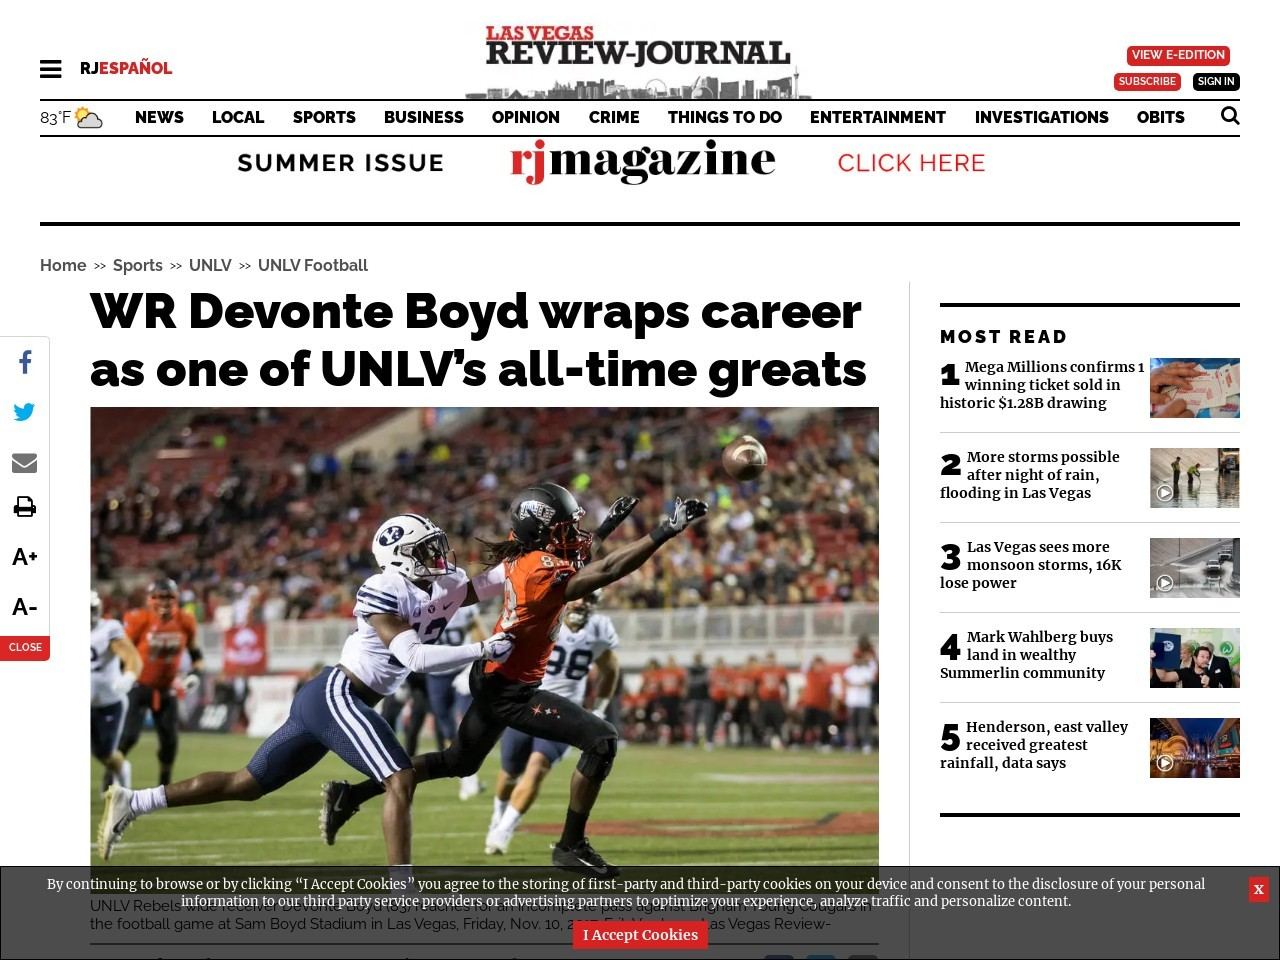 WR Devonte Boyd wraps career as one of UNLV's all-time greats